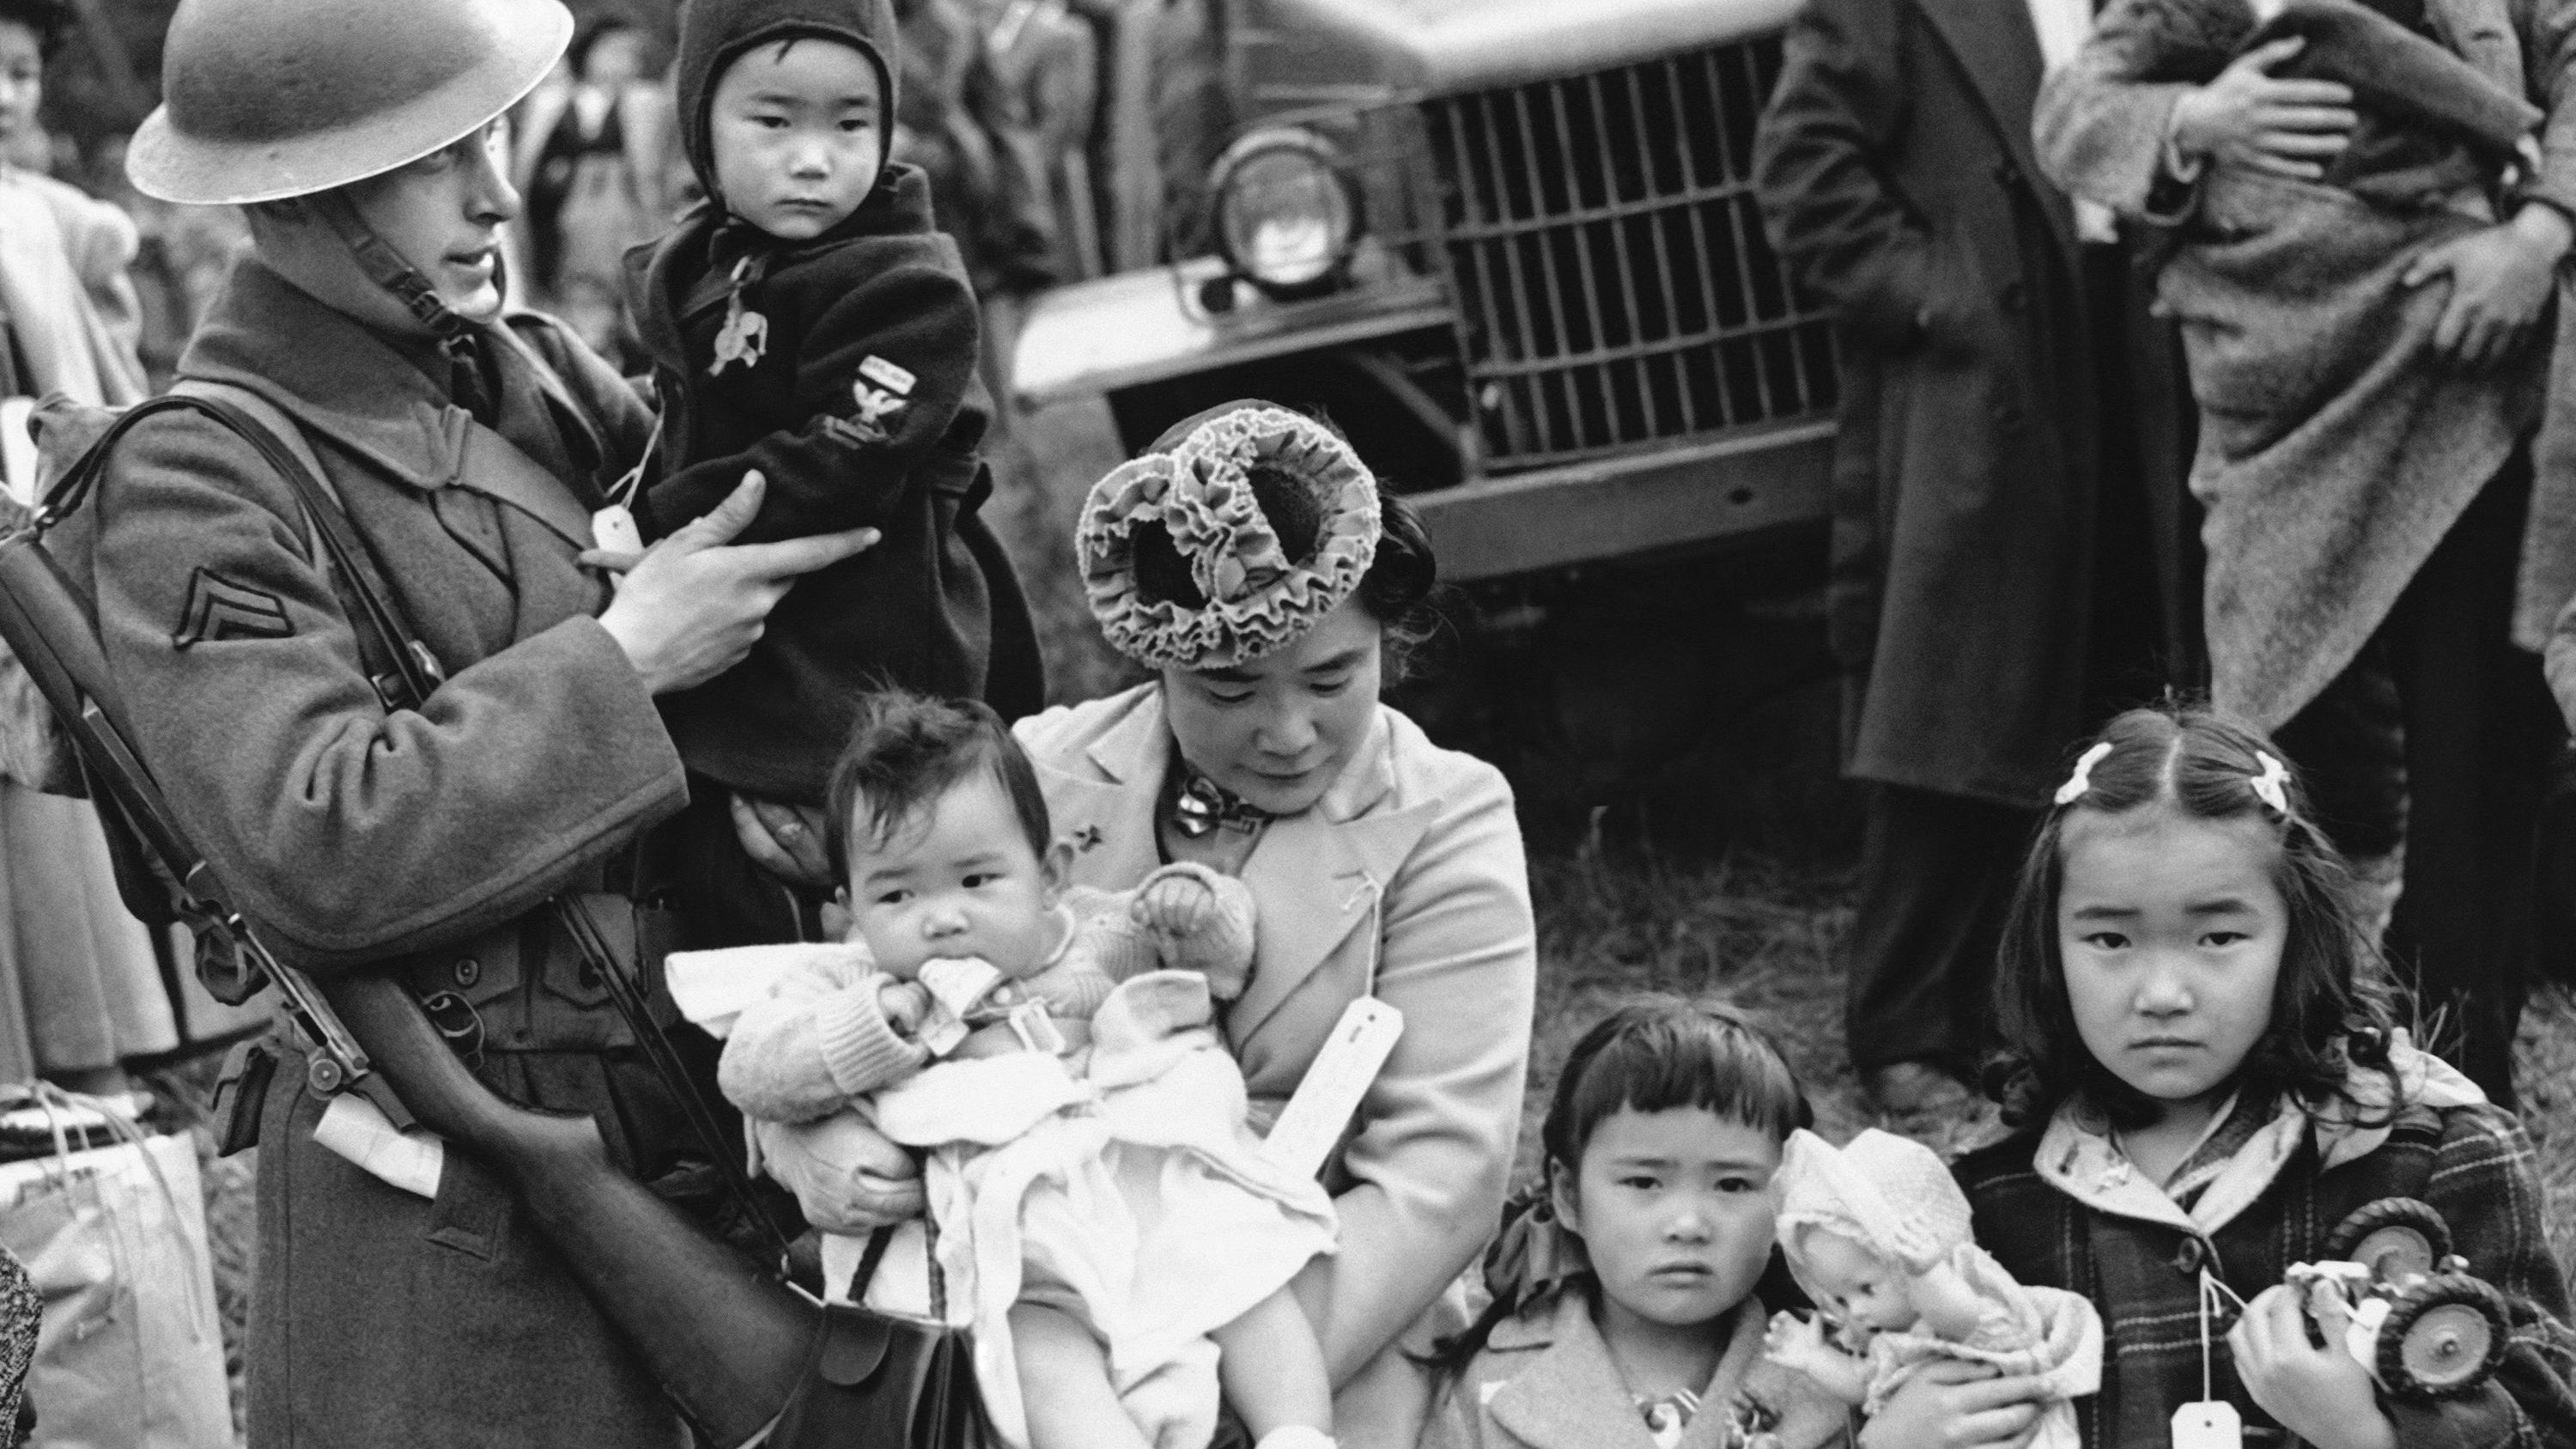 Mrs. Shigeho Kitamoto had no time for tears when she was evacuated along with other Japanese from Bainbridge Island in Washington State, March 30, 1942.